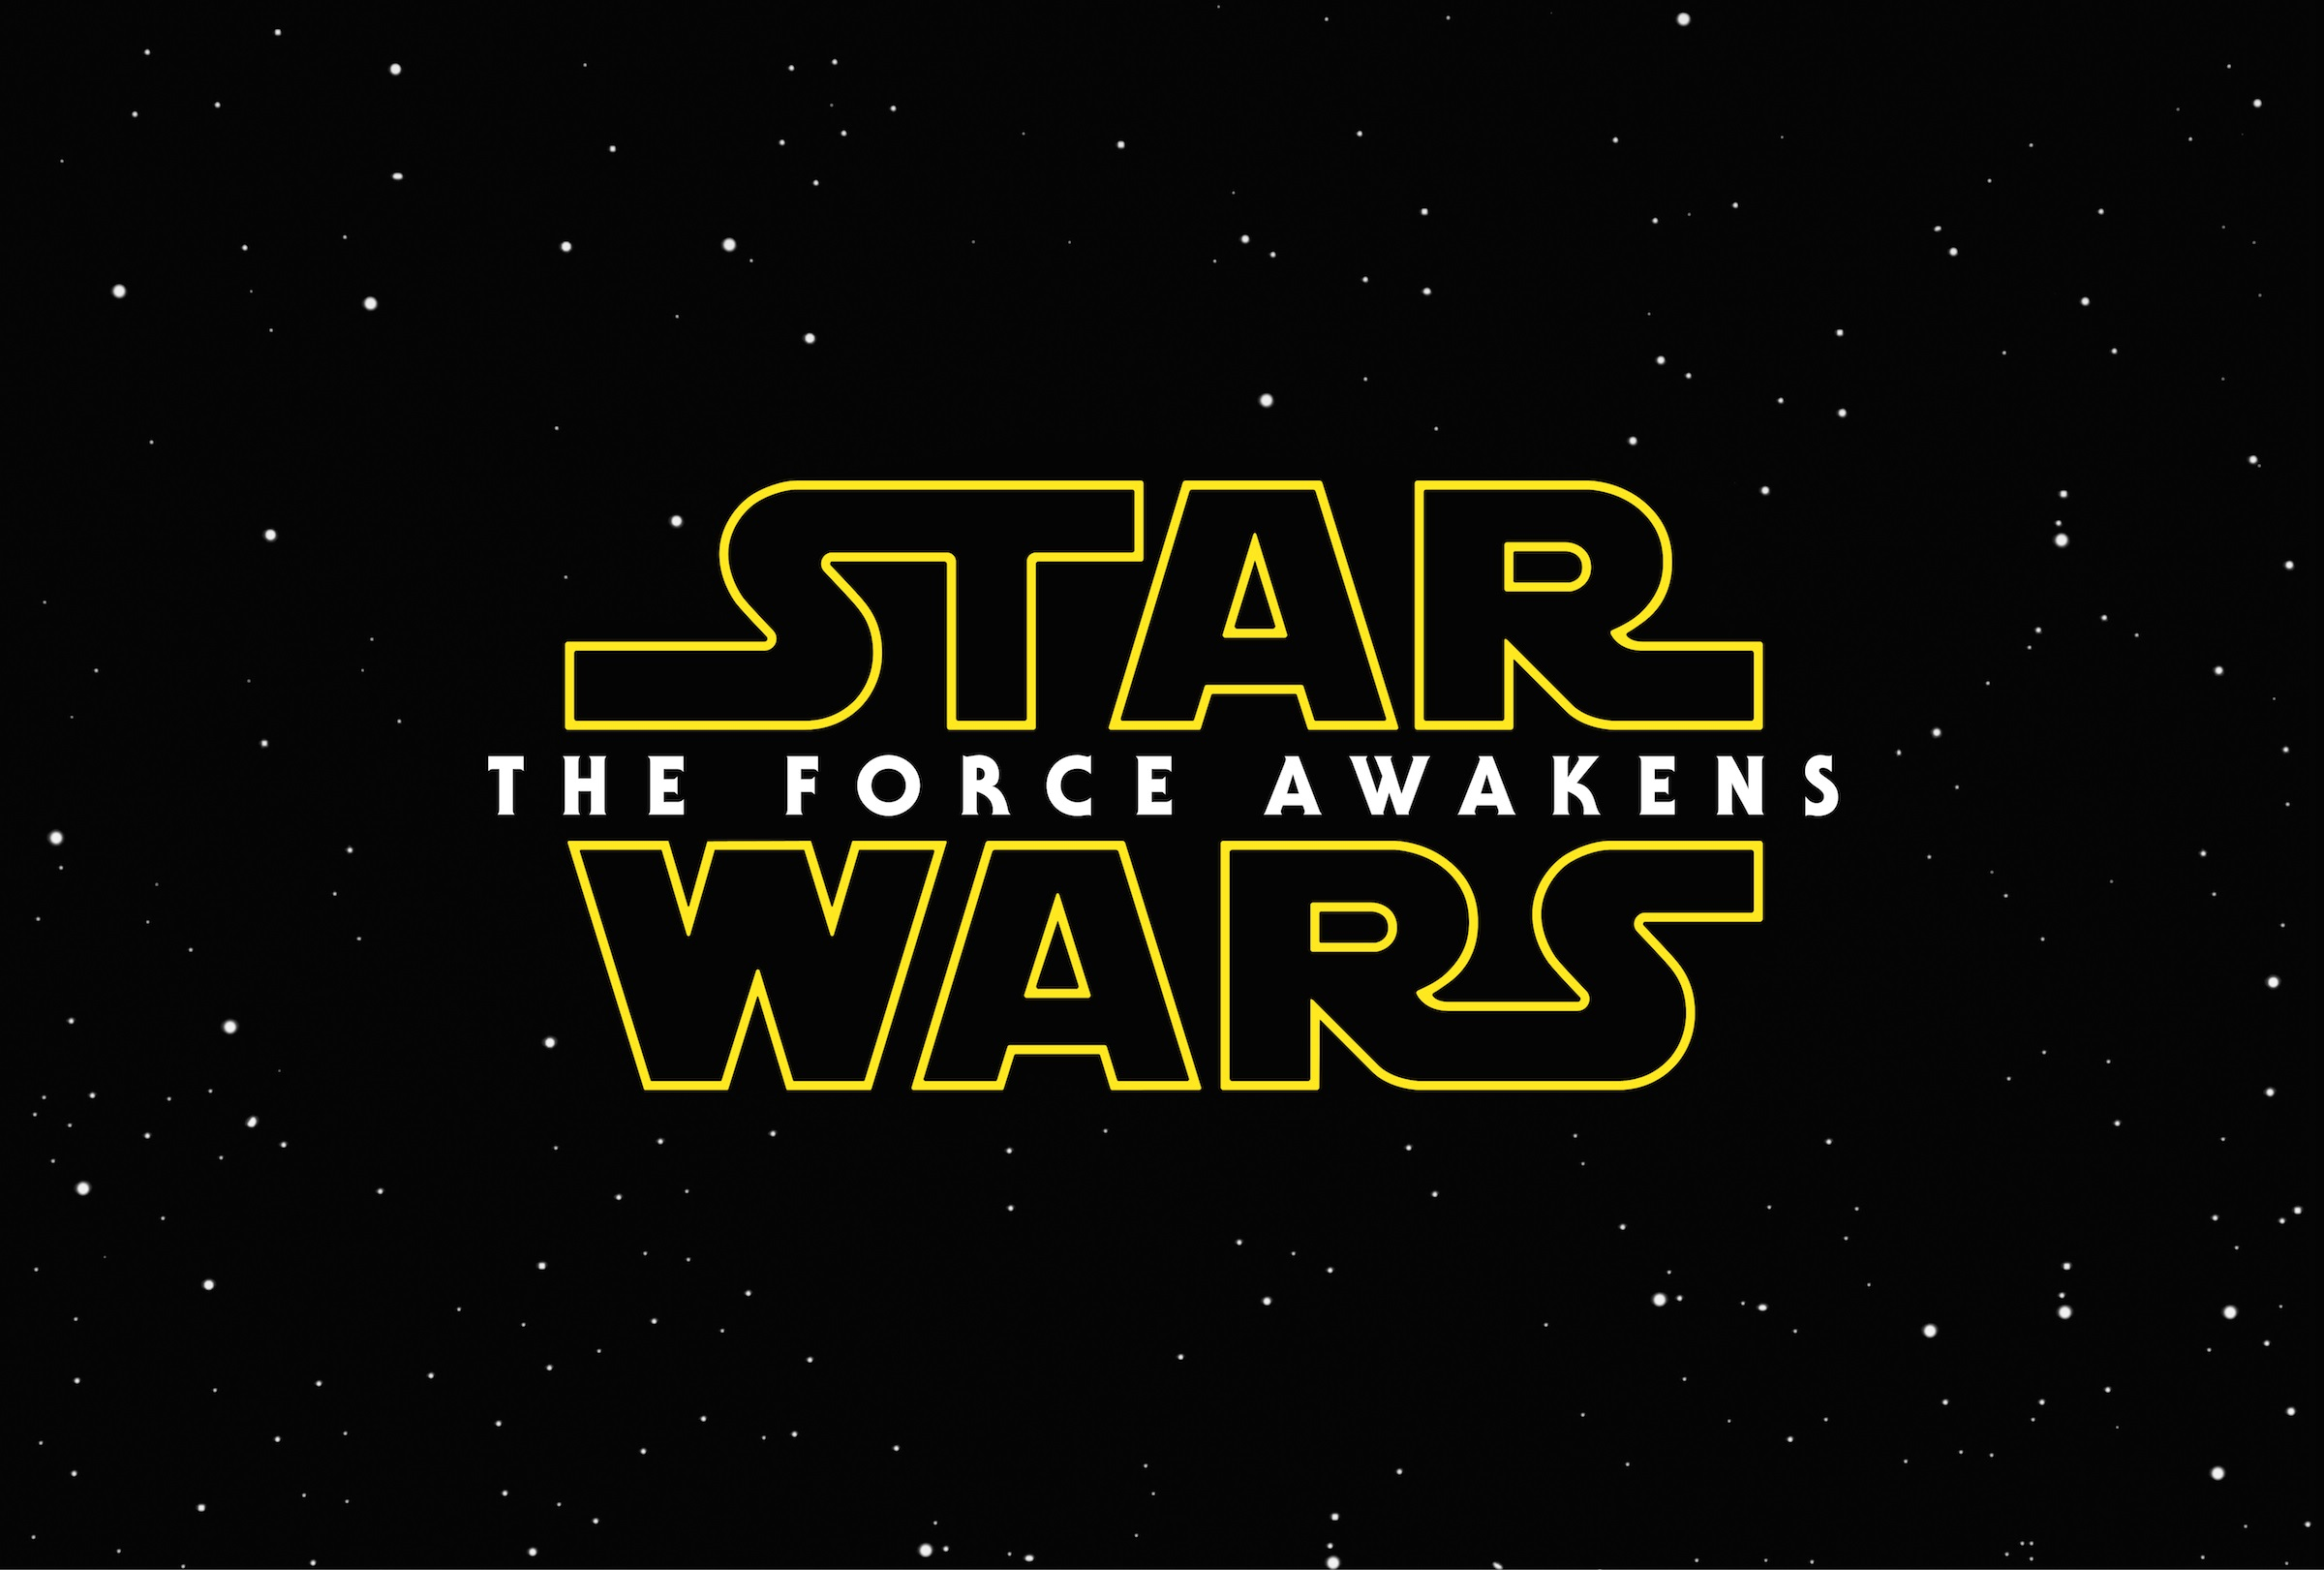 Star Wars the Force Awakens wallpaper 1